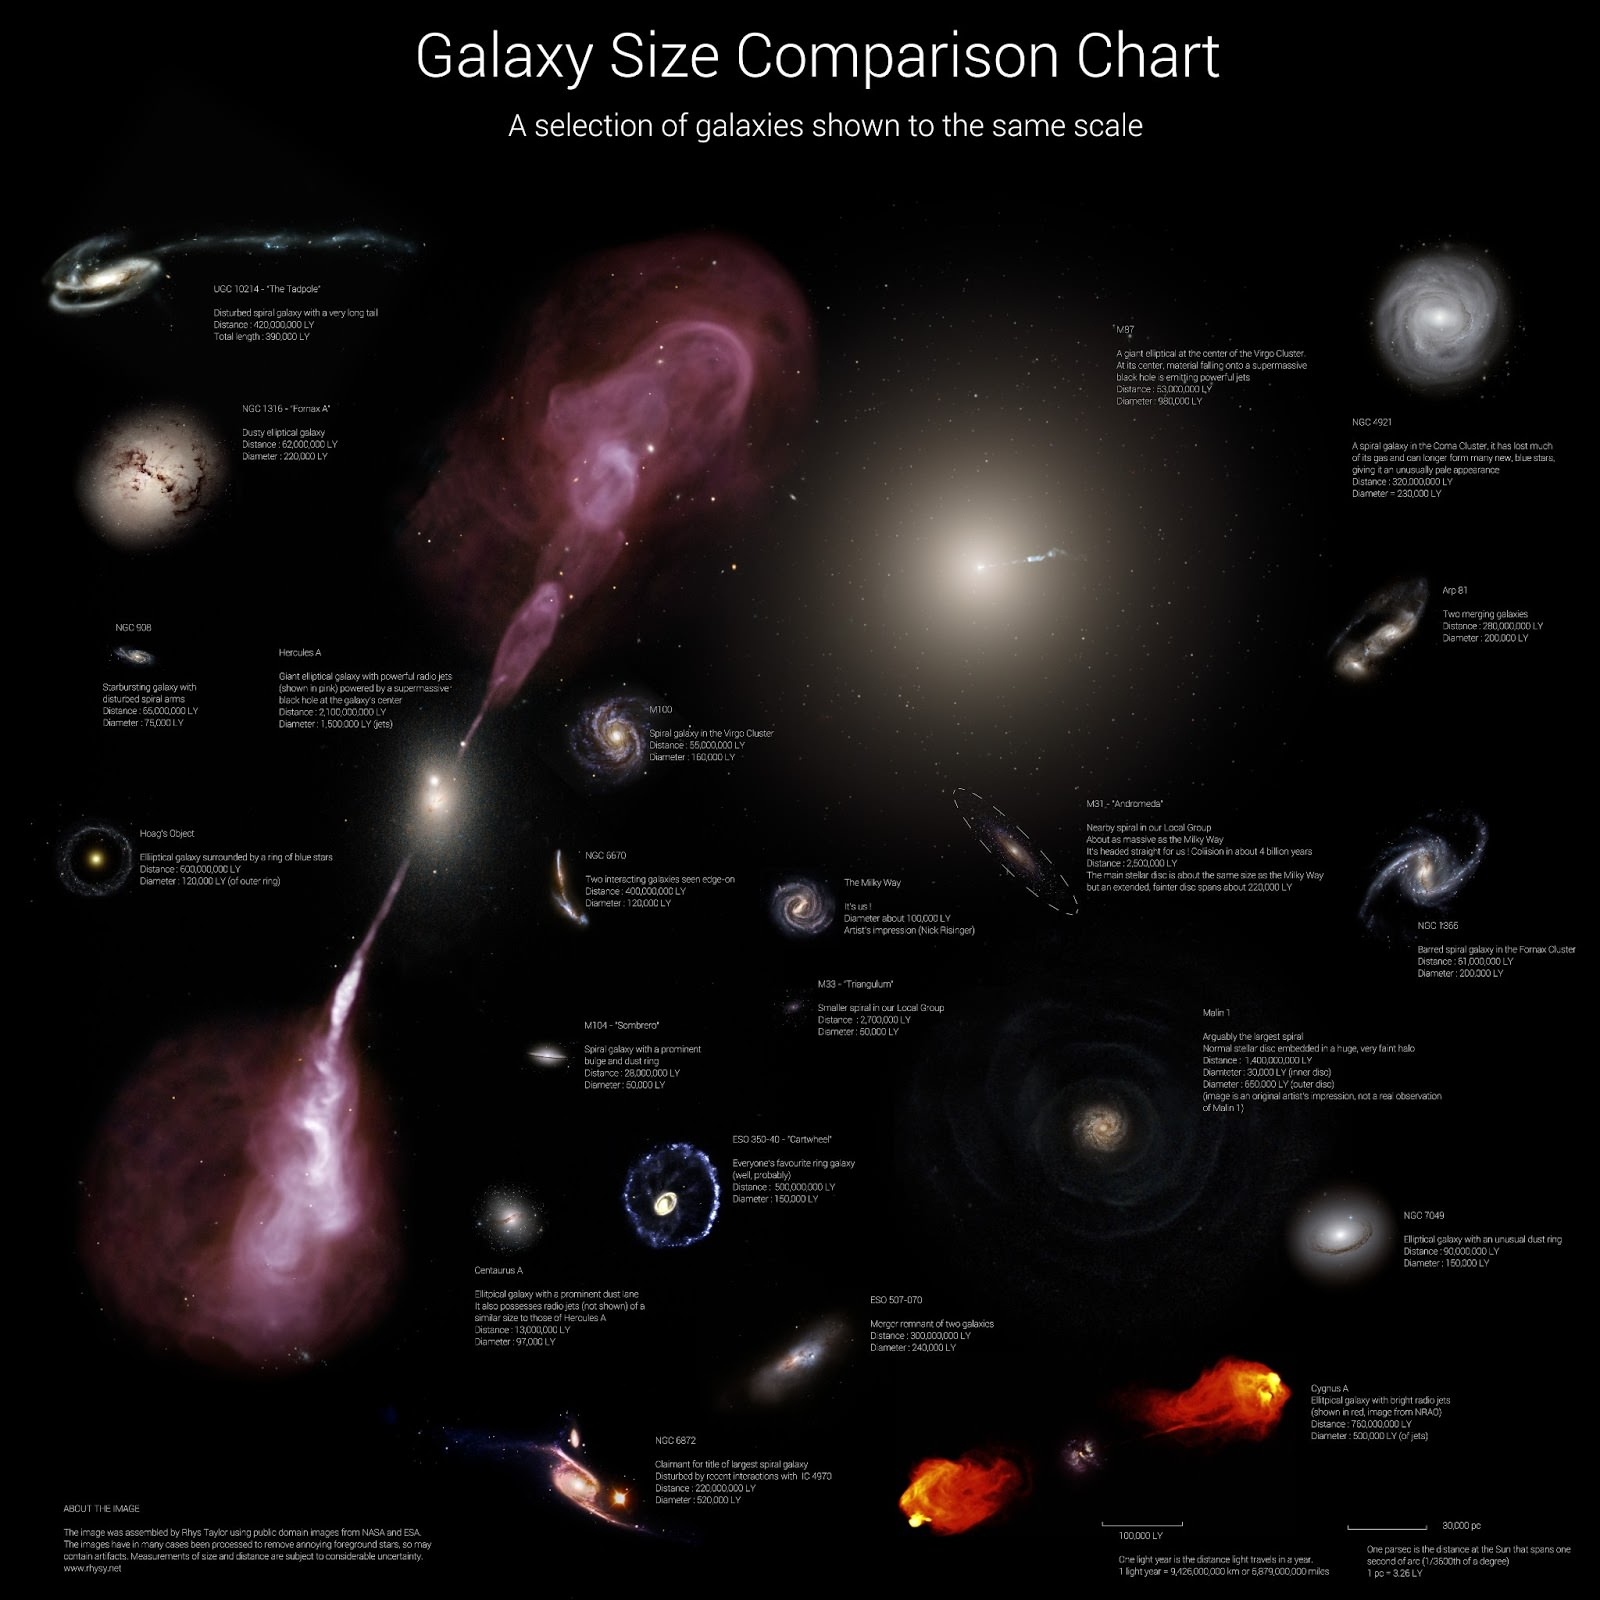 Galaxy size comparison chart by astrophysicist Rhys Taylor